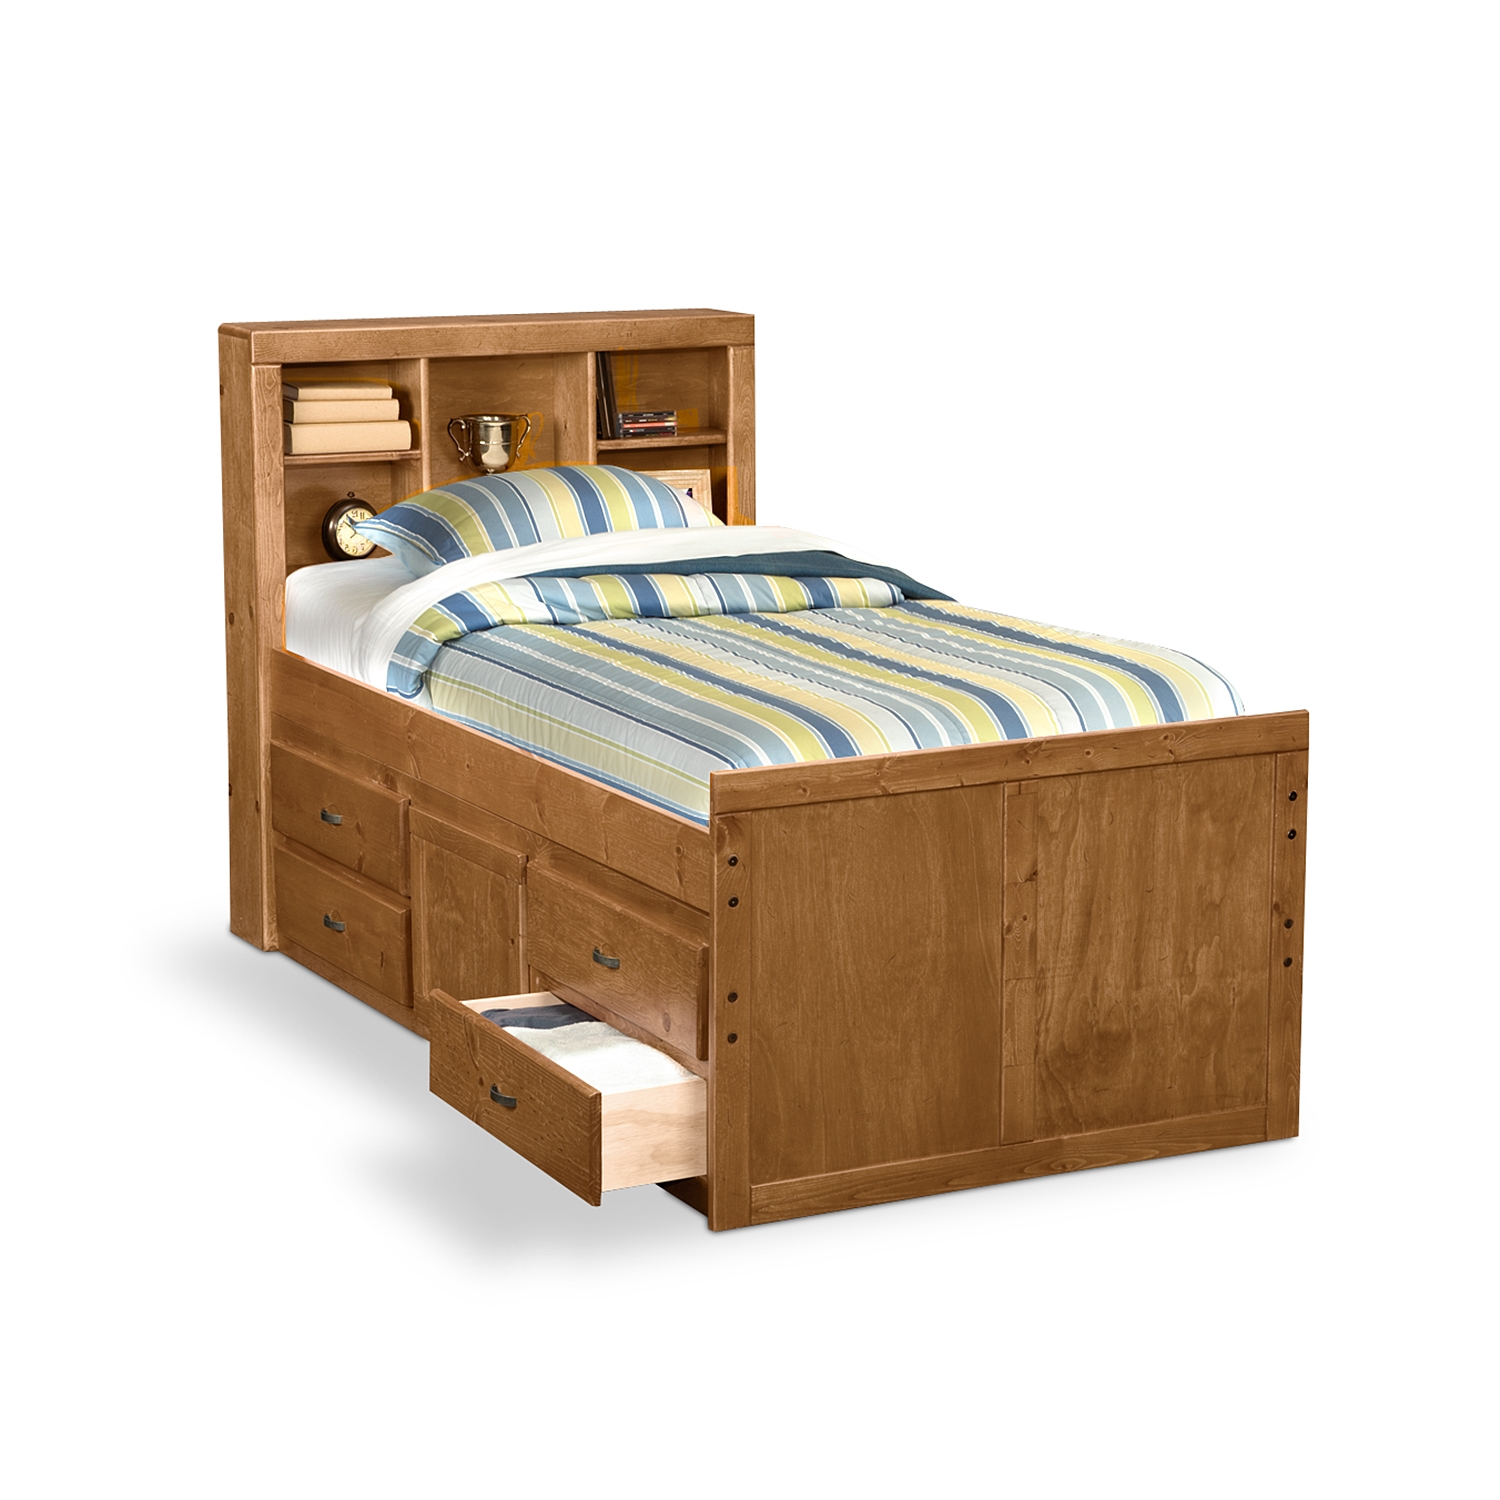 Awesome twin bed with drawers underneath homesfeed - Twin bed for small space property ...